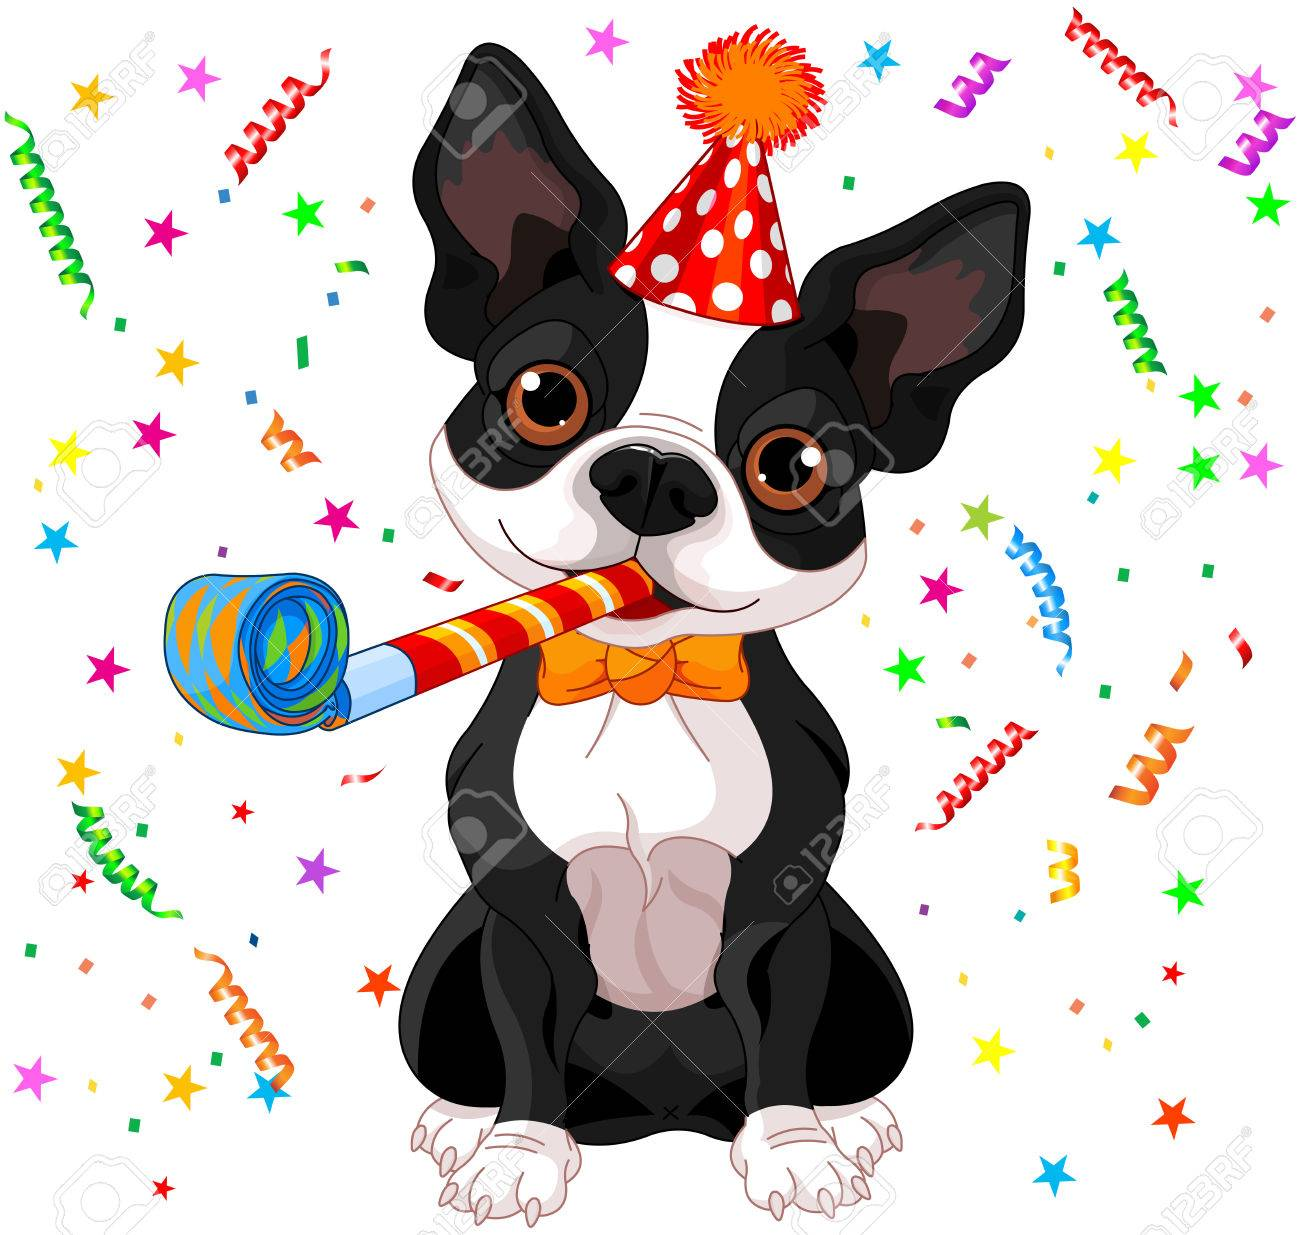 Livre: La Méthode Tellington-TTouch de Linda Tellington-Jones - Page 6 35588778-illustration-of-cute-boston-terrier-celebrating